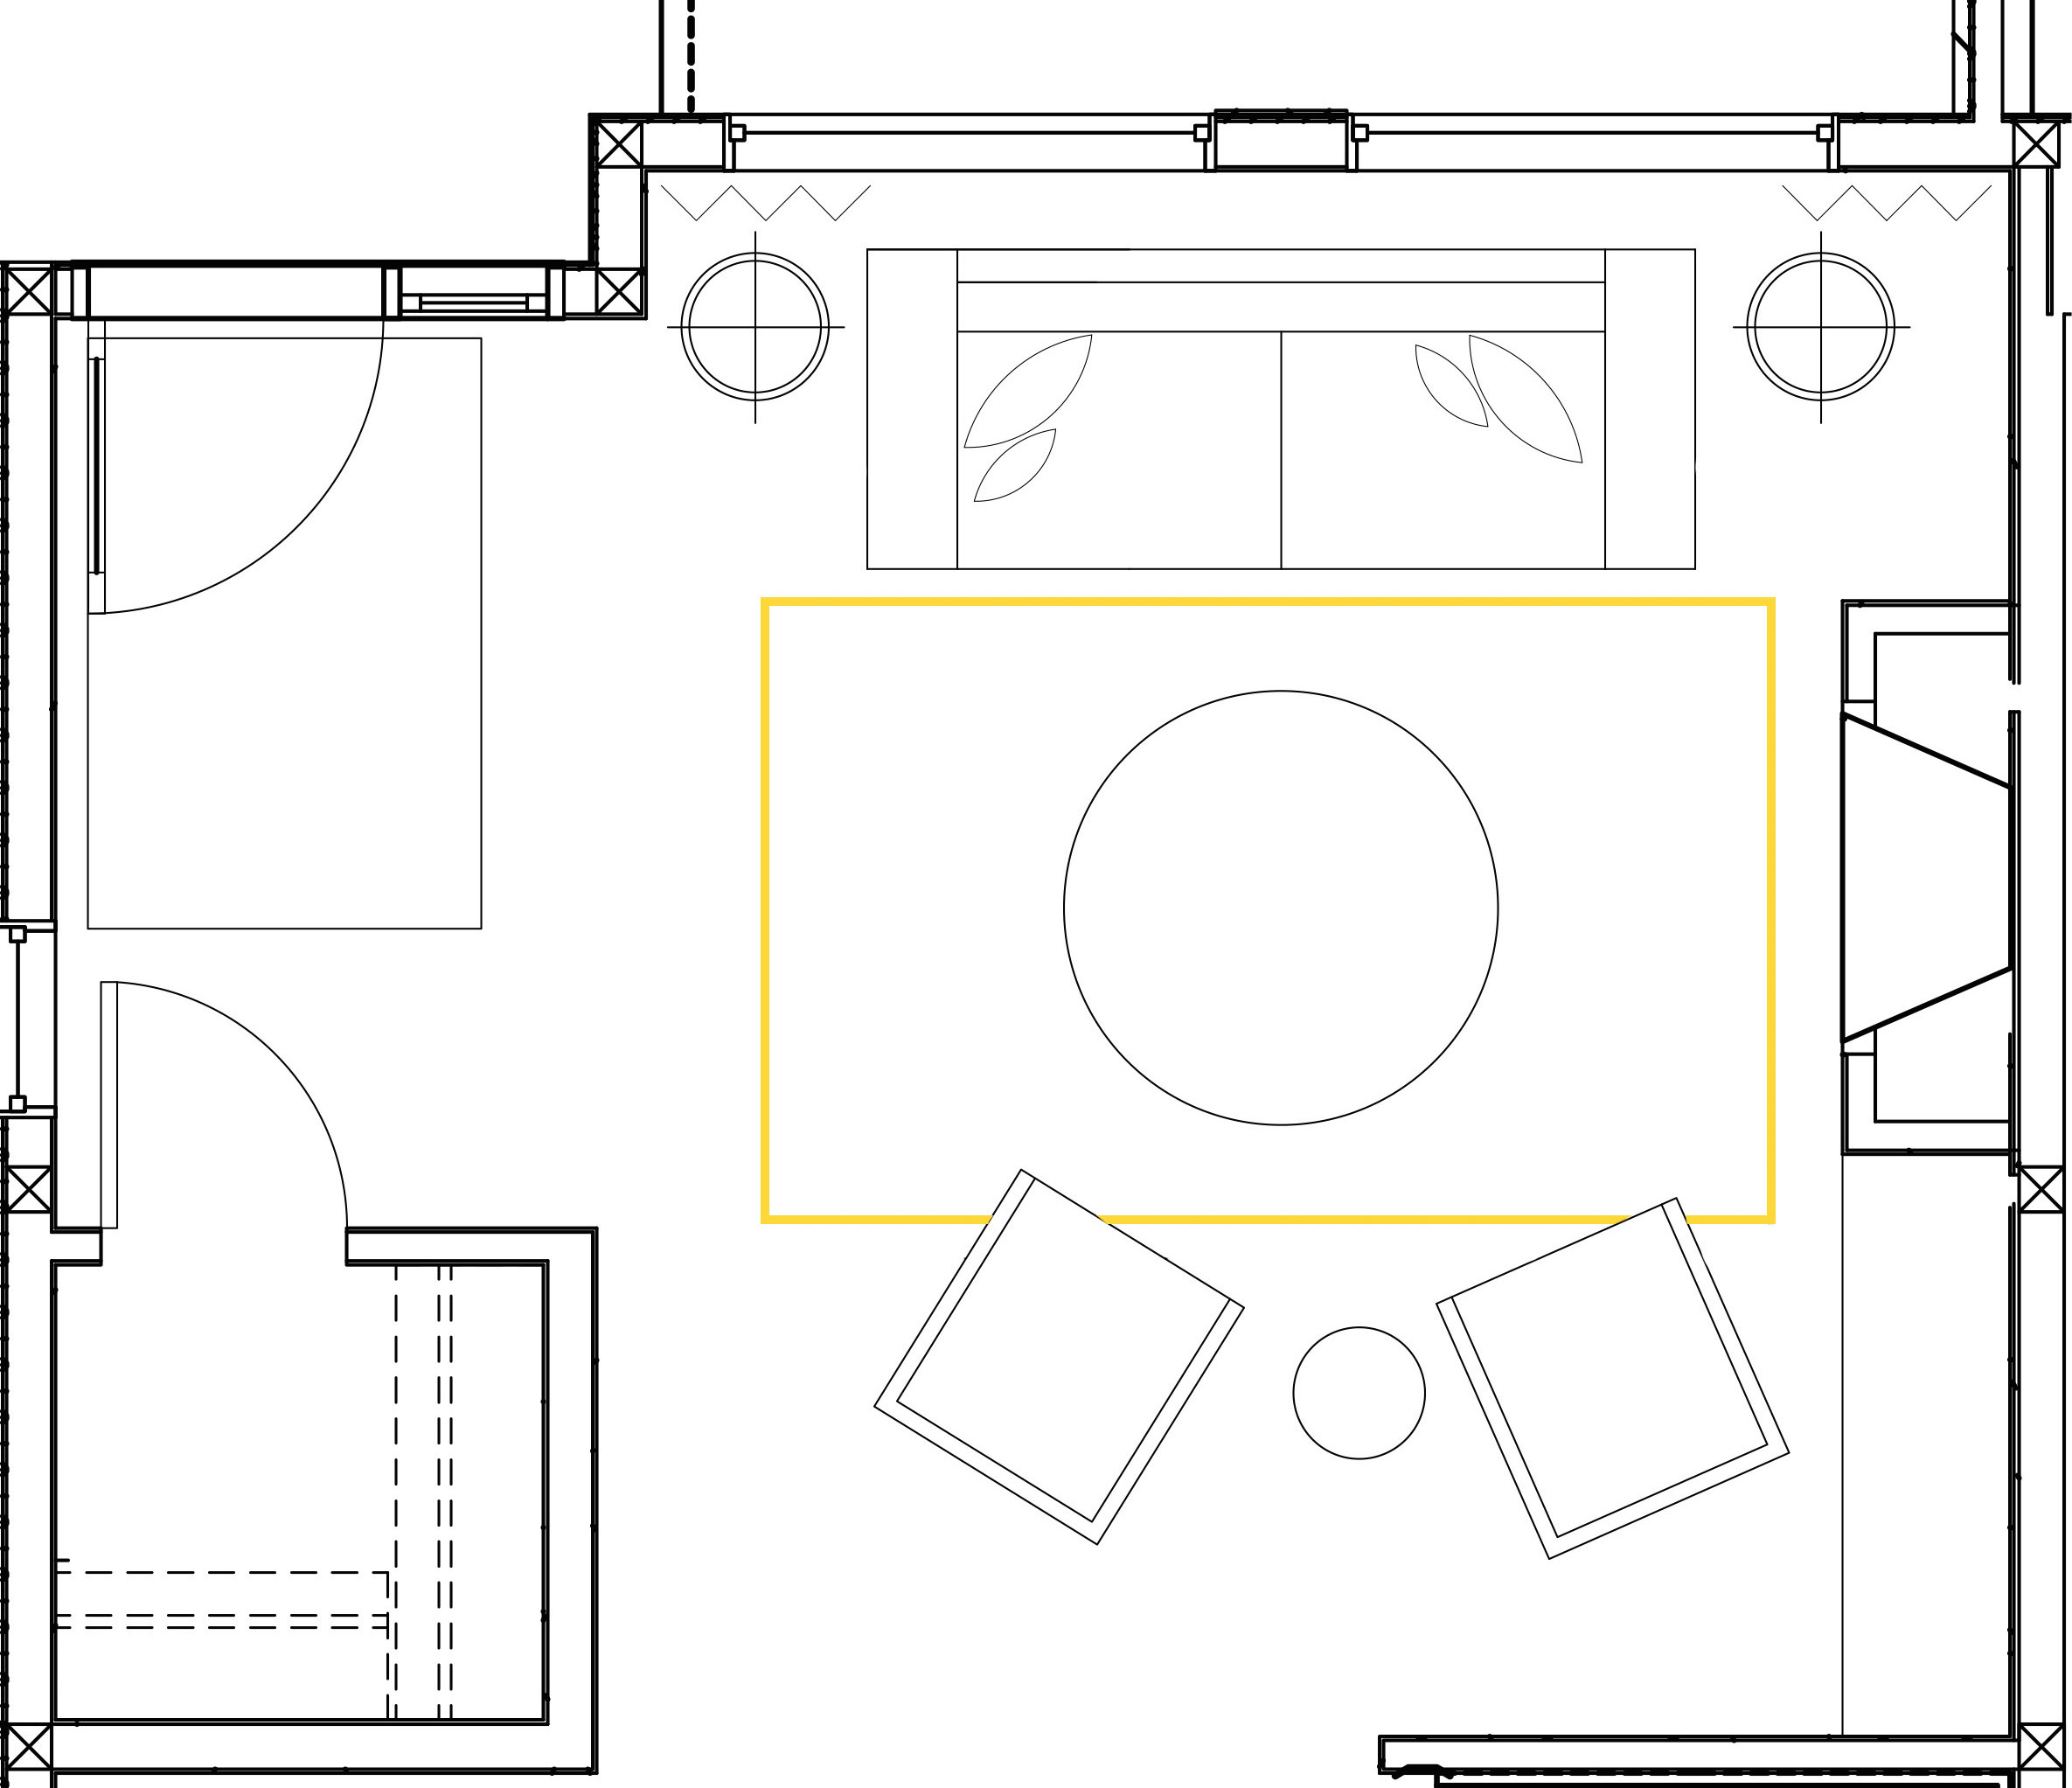 The size shown above is too small for the space and does not anchor the furniture together. In a living room setting, a 6x9 is often too small to offer the connection or anchor point designers look for when pulling a room together.